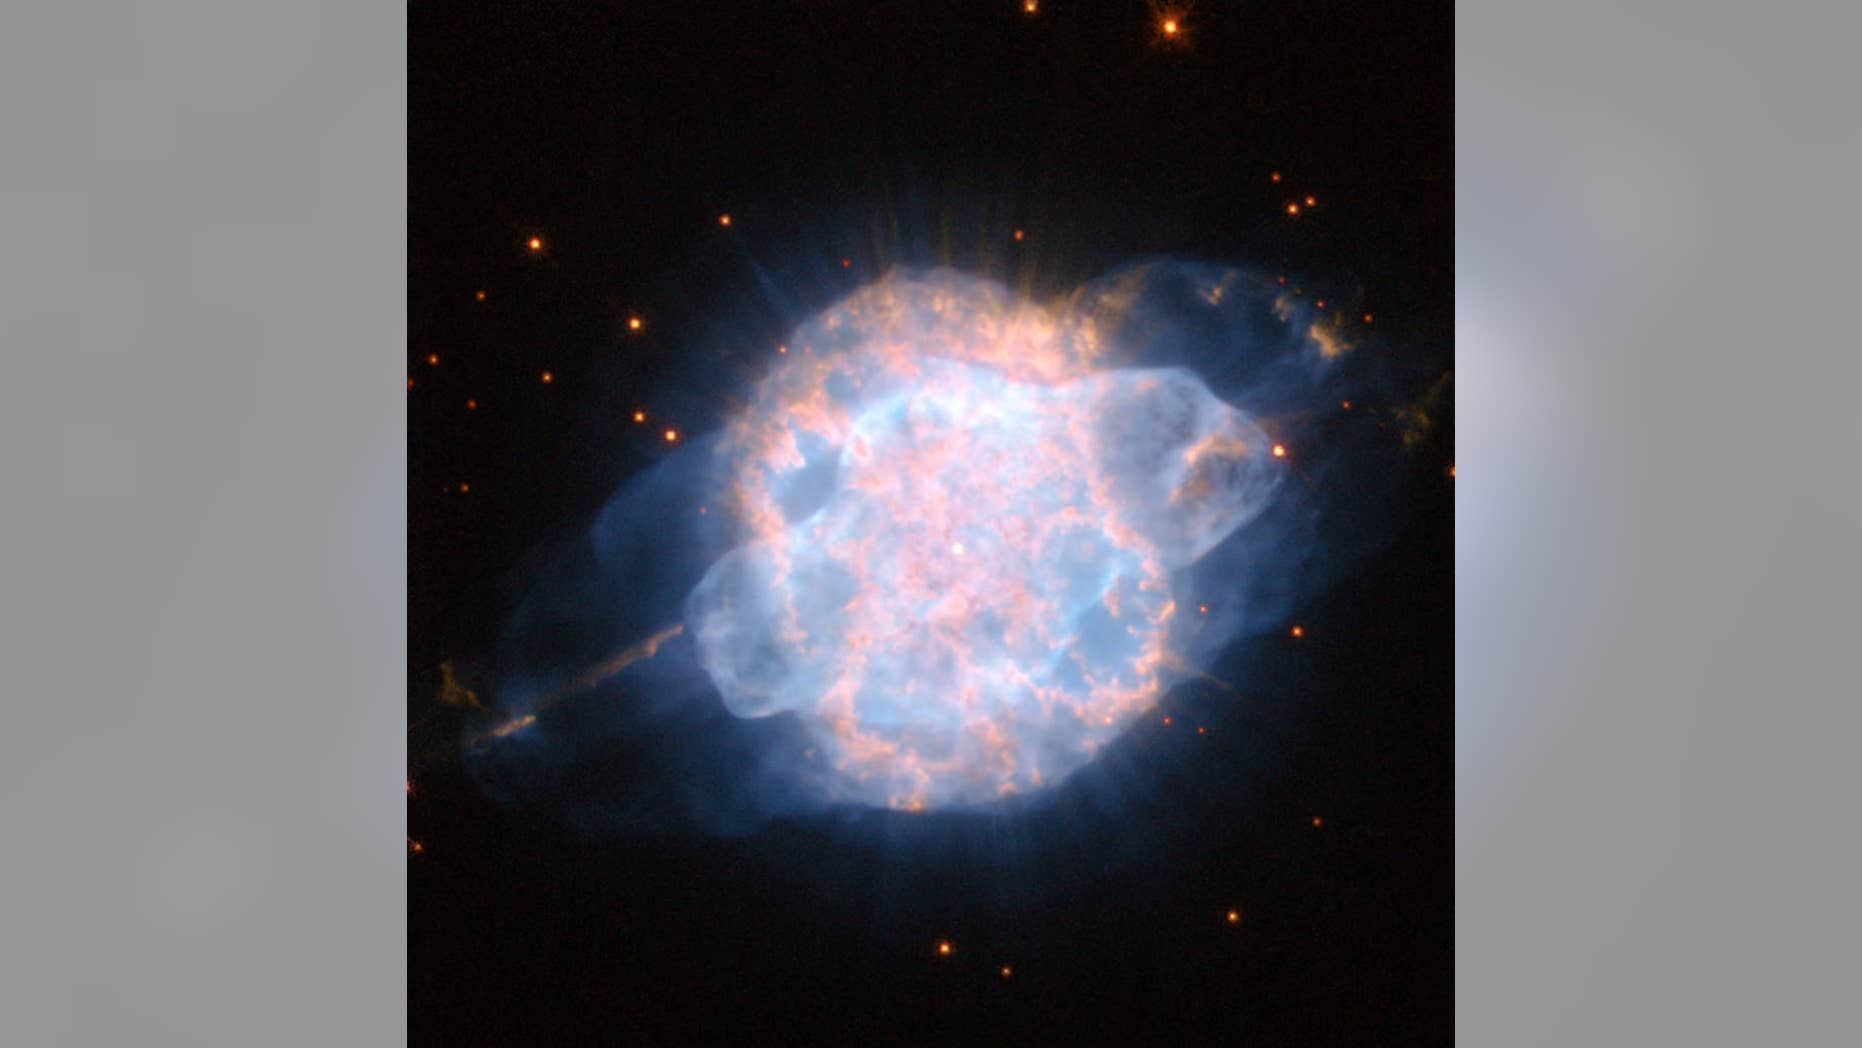 Planetary nebula NGC 3918 shines bright like a cosmic eye. It's found in the southern sky, within the constellation Centaurus.